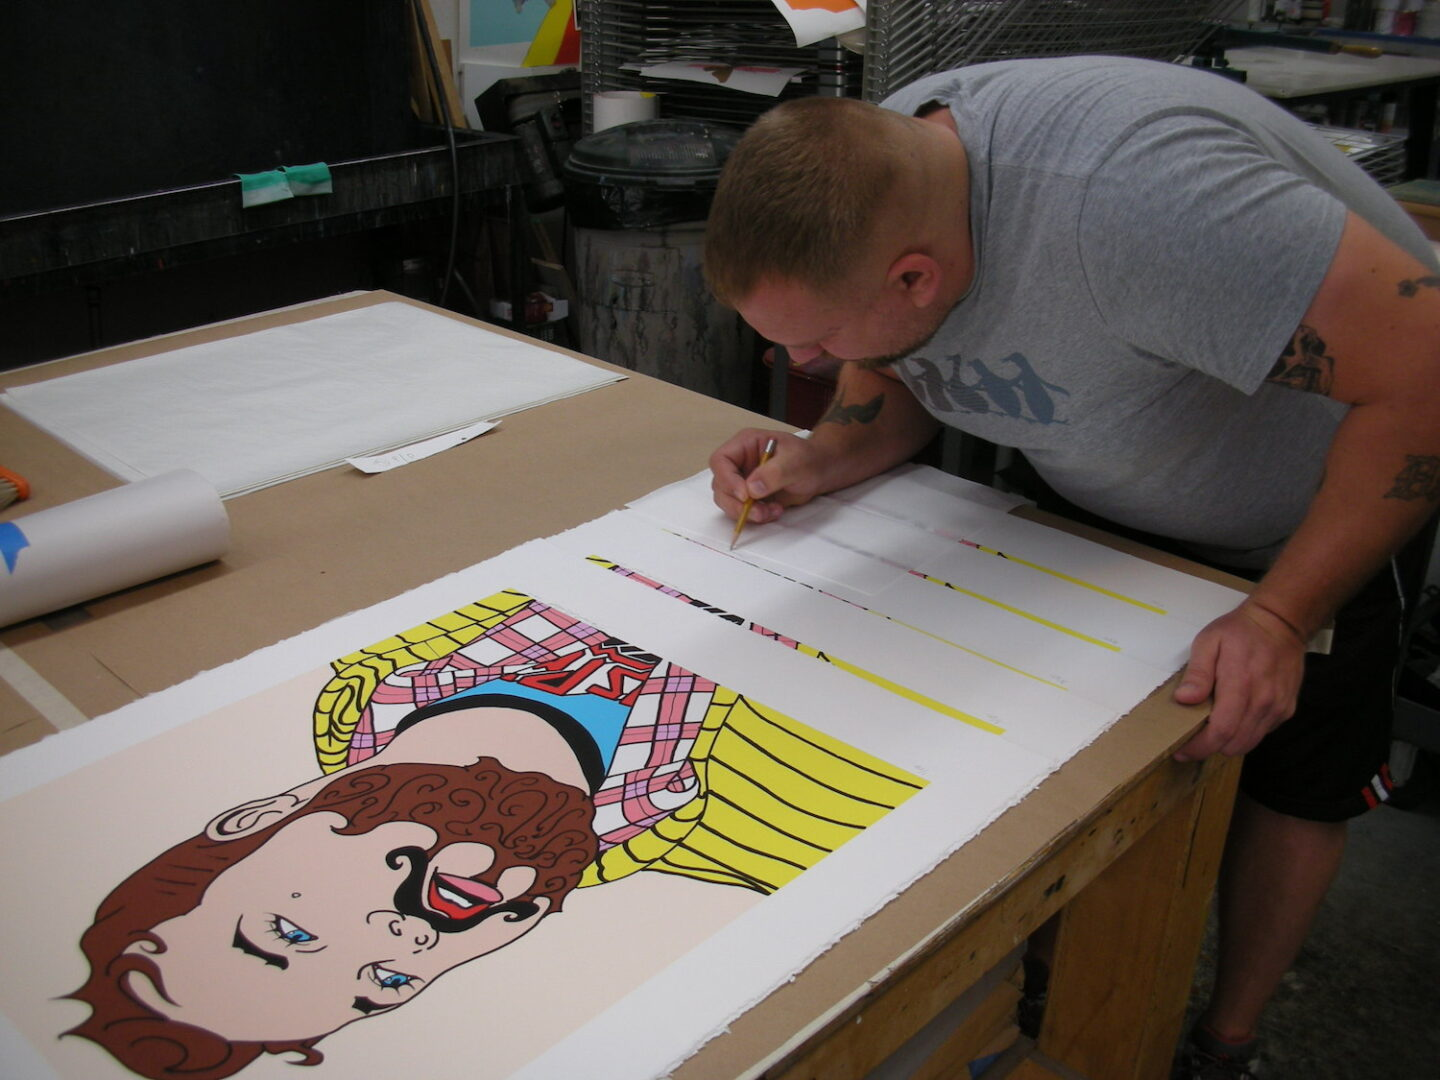 Artist: James Gobel signs prints